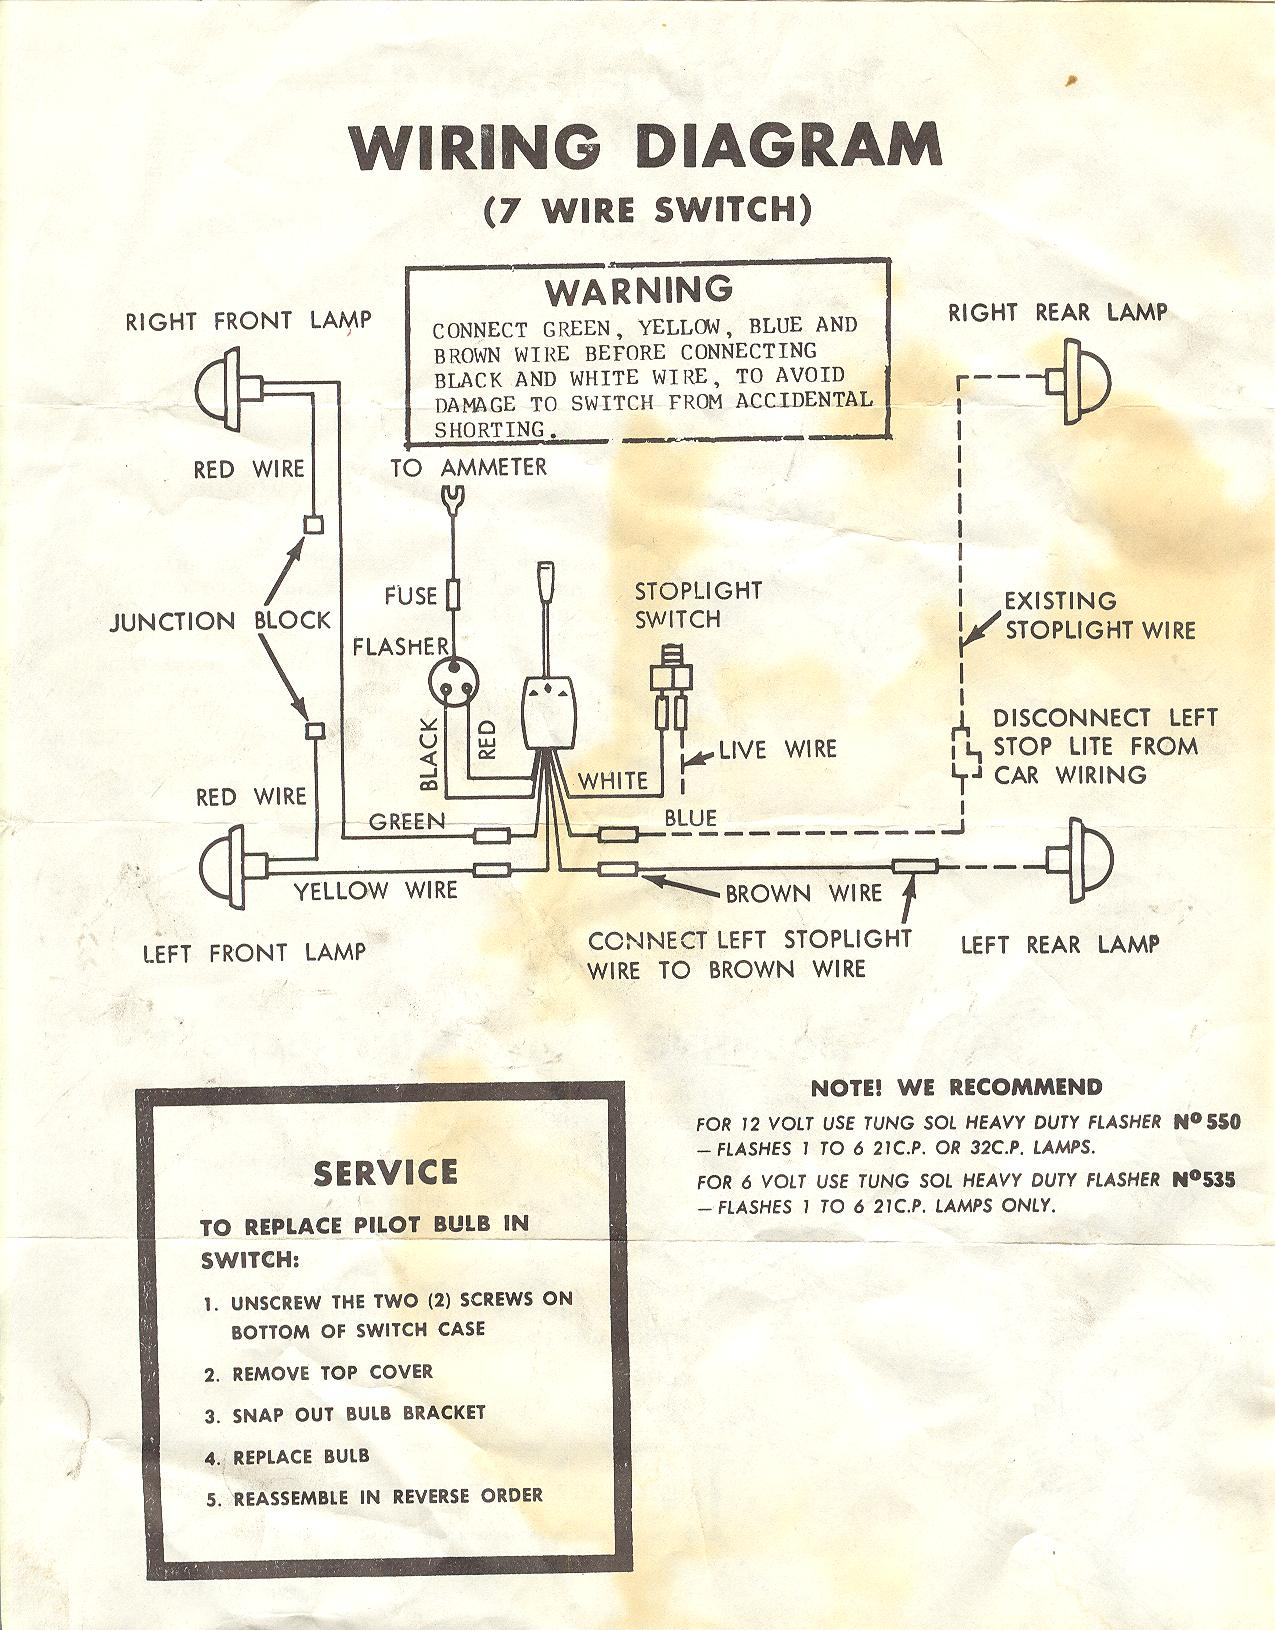 ke turn signal wiring diagram ke wiring diagrams napa turn signal switch01 002 jpg ke turn signal wiring diagram